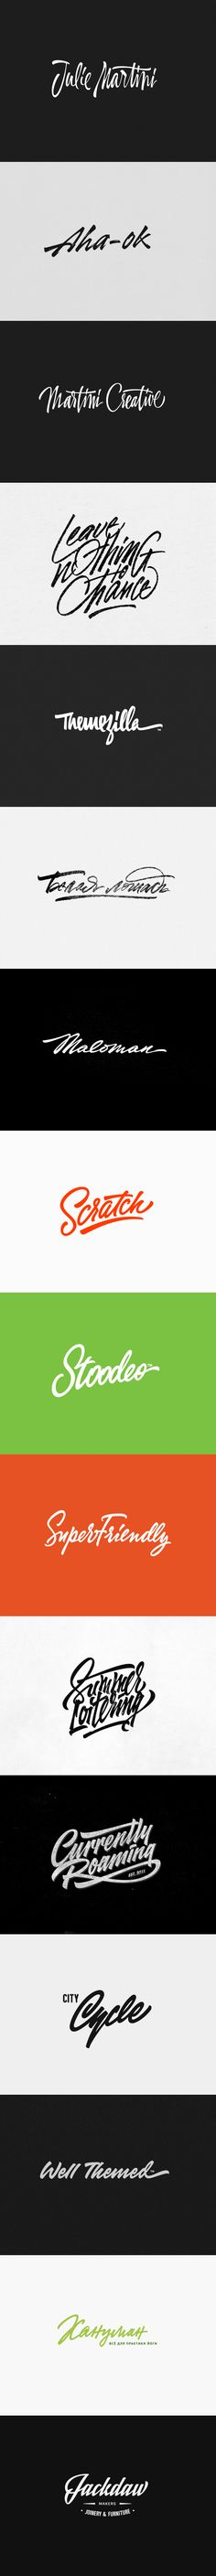 Recent logos and t-shirt letterings #logo #type #design